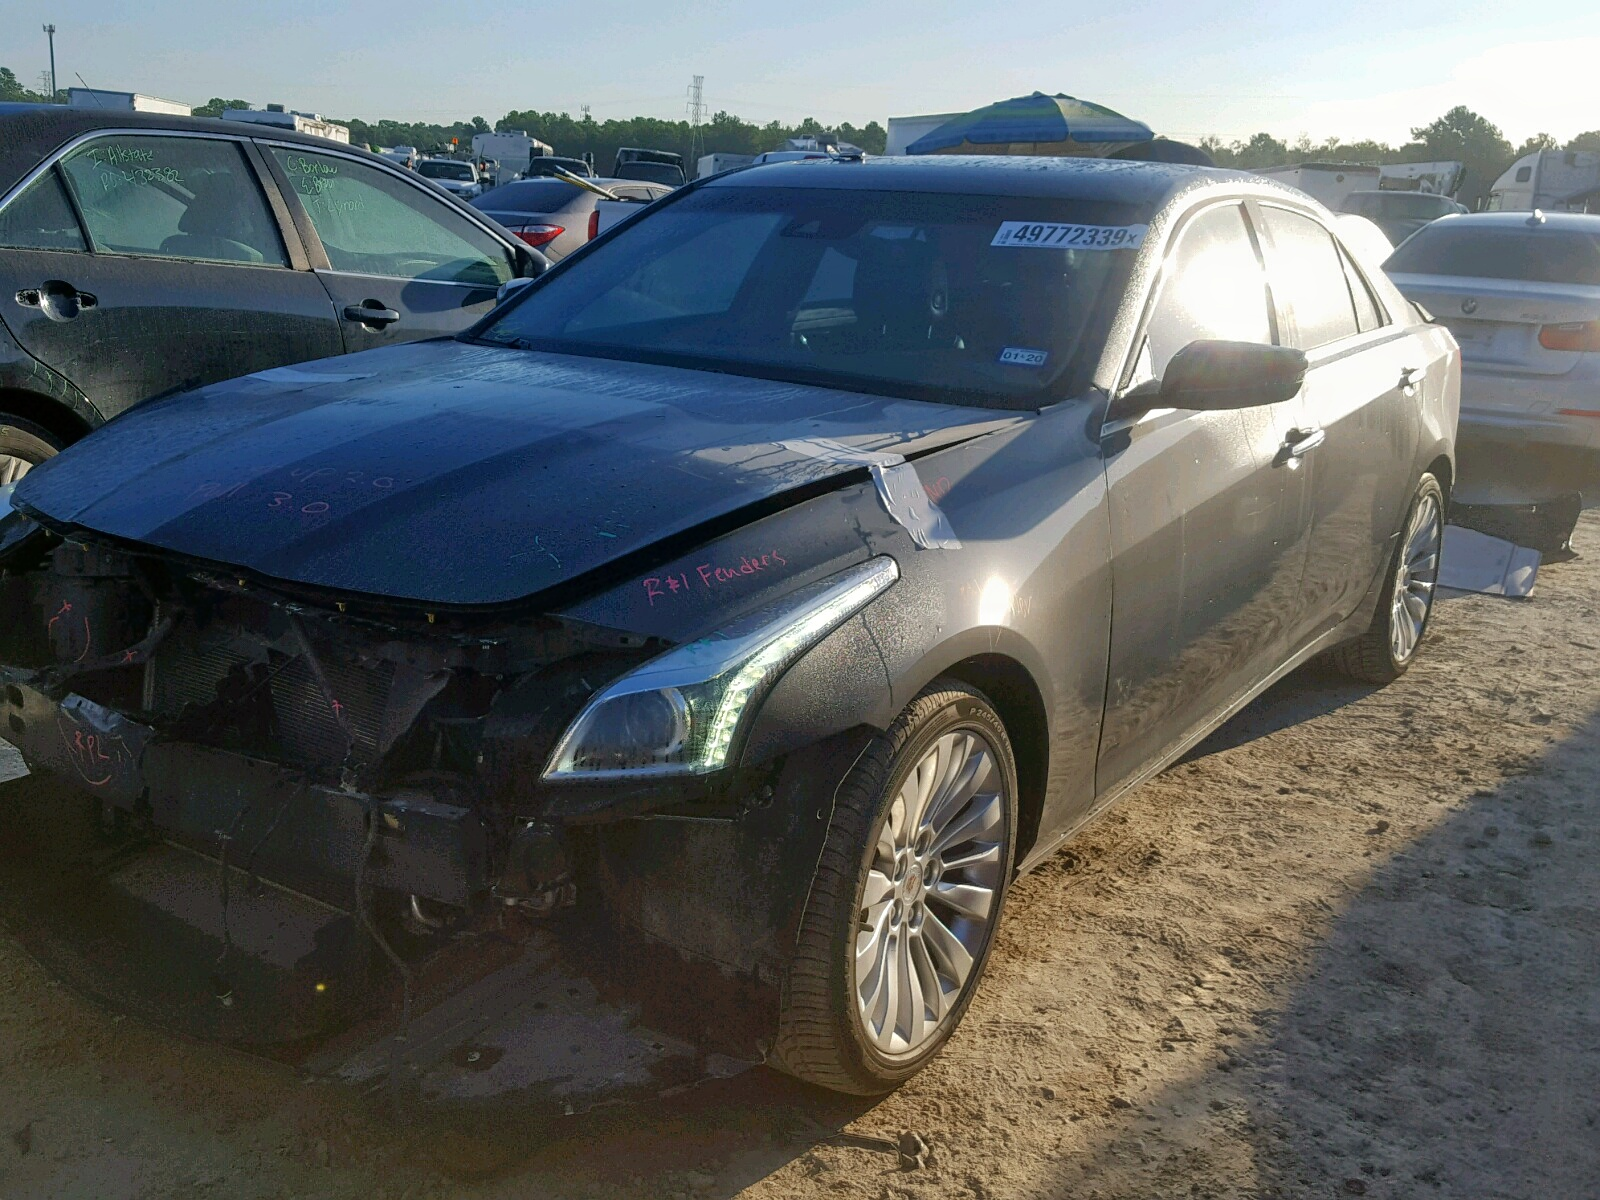 2014 Cadillac Cts Luxury 2.0L Right View